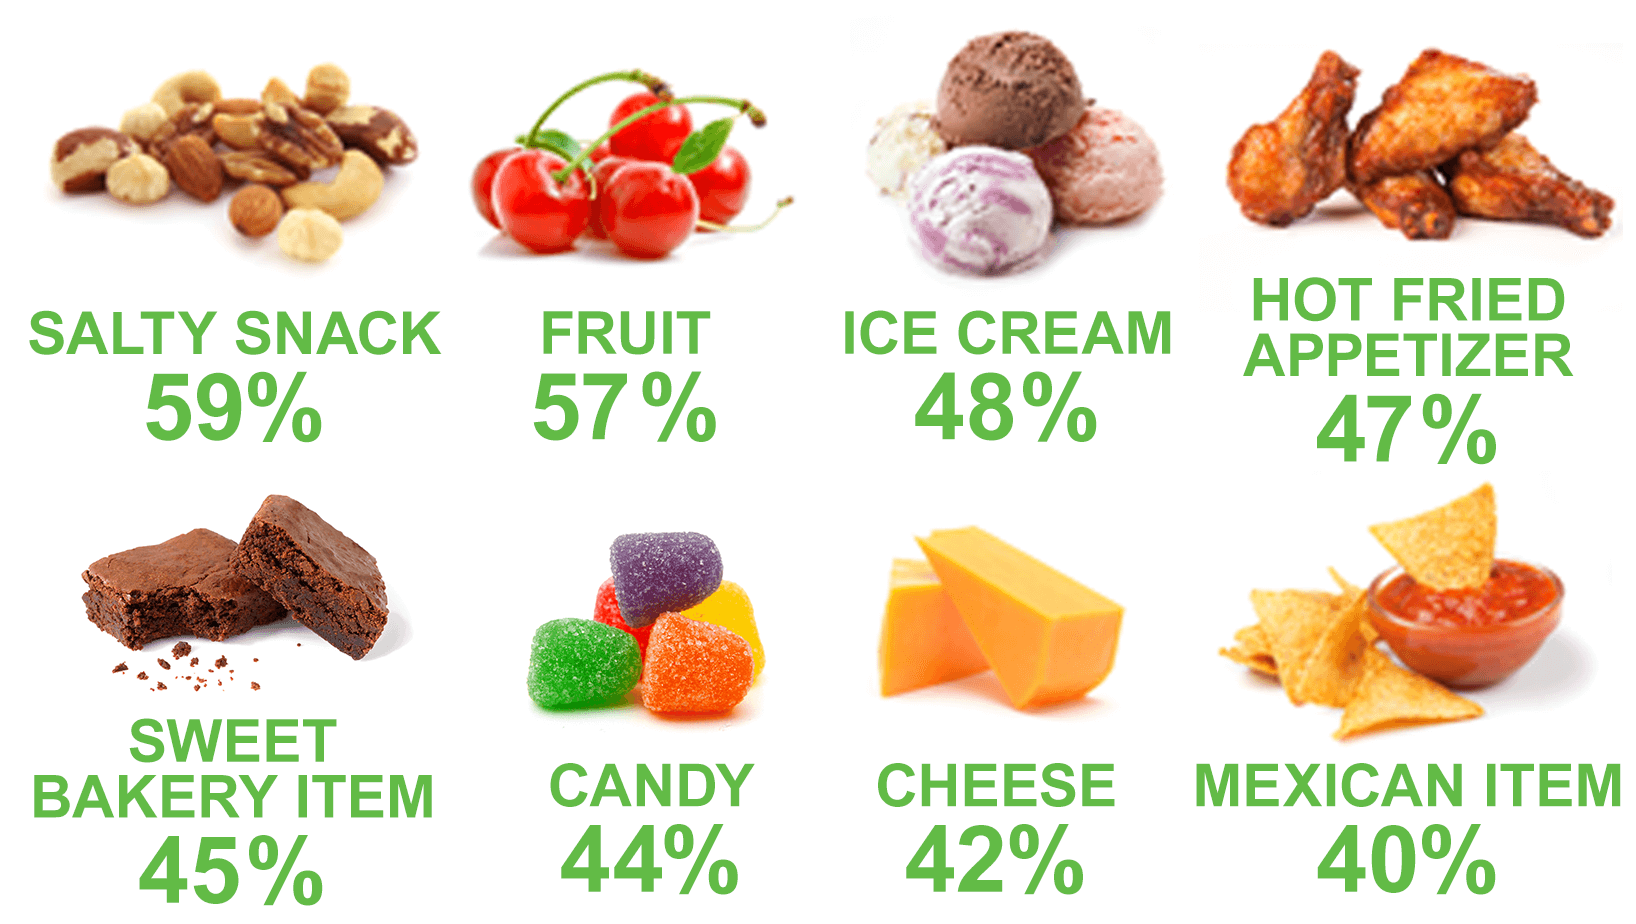 A chart of snacks and their consumer preference by percentage